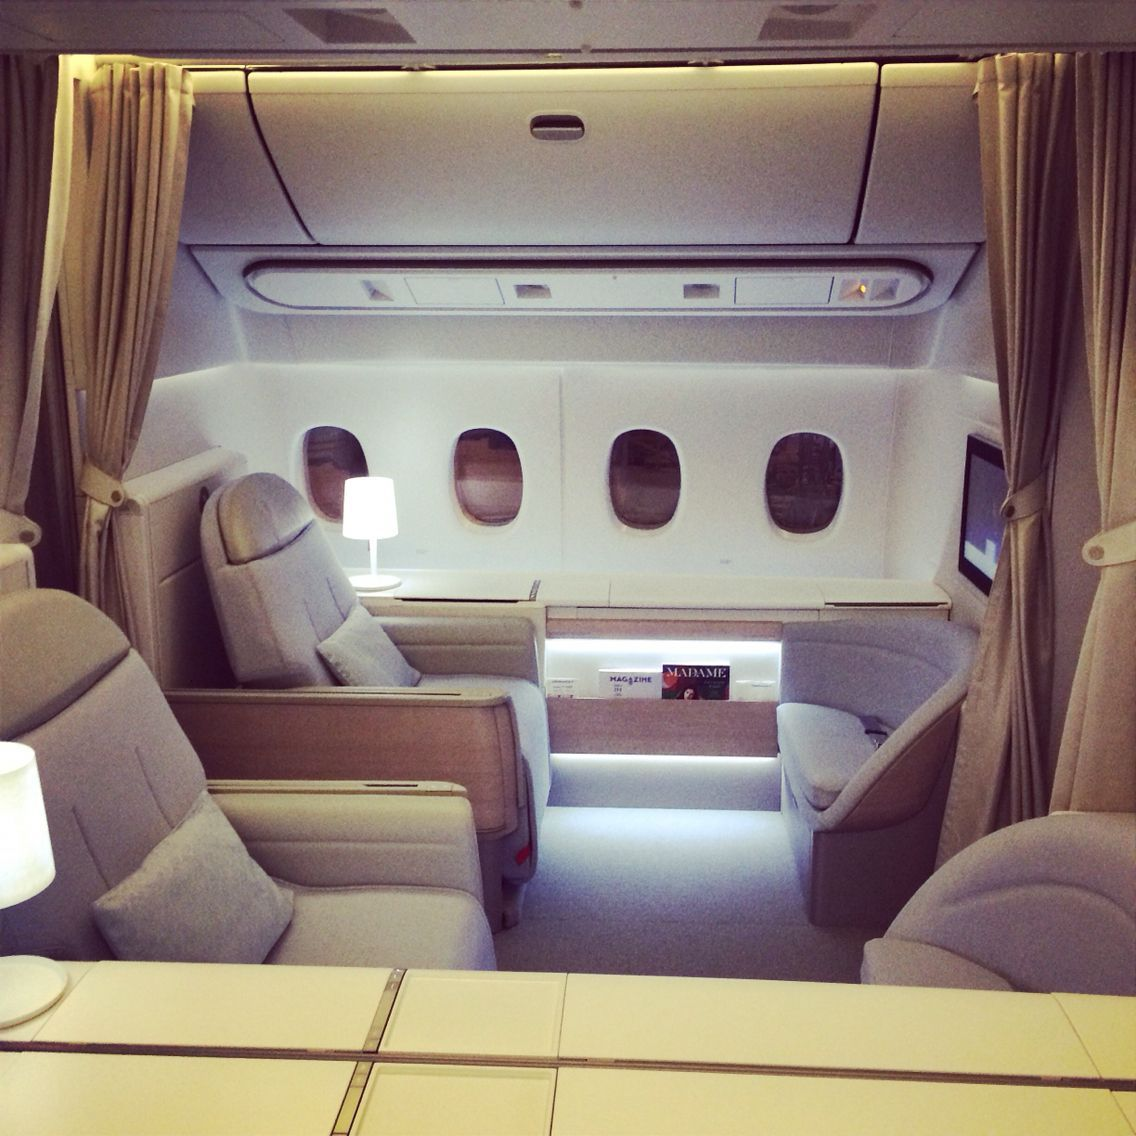 New first class air france cabine aviationglamourstyle